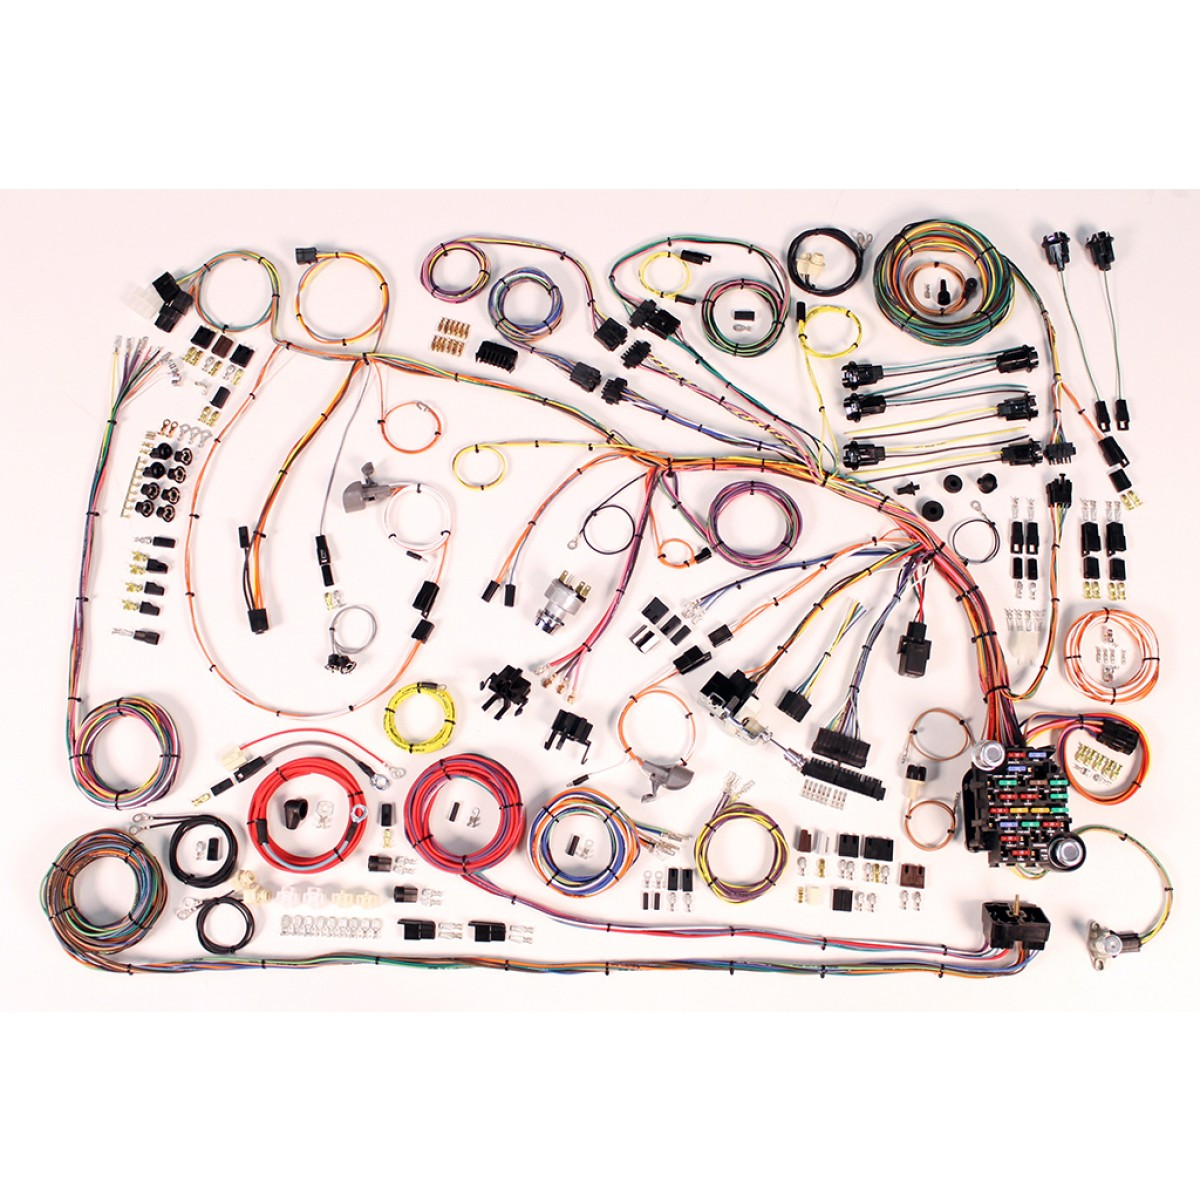 wiring harness kit 1966 1968 impala part 510372 66 68 impala full wire harness 510372 1966 1968 impala wire harness complete wiring harness kit 1966